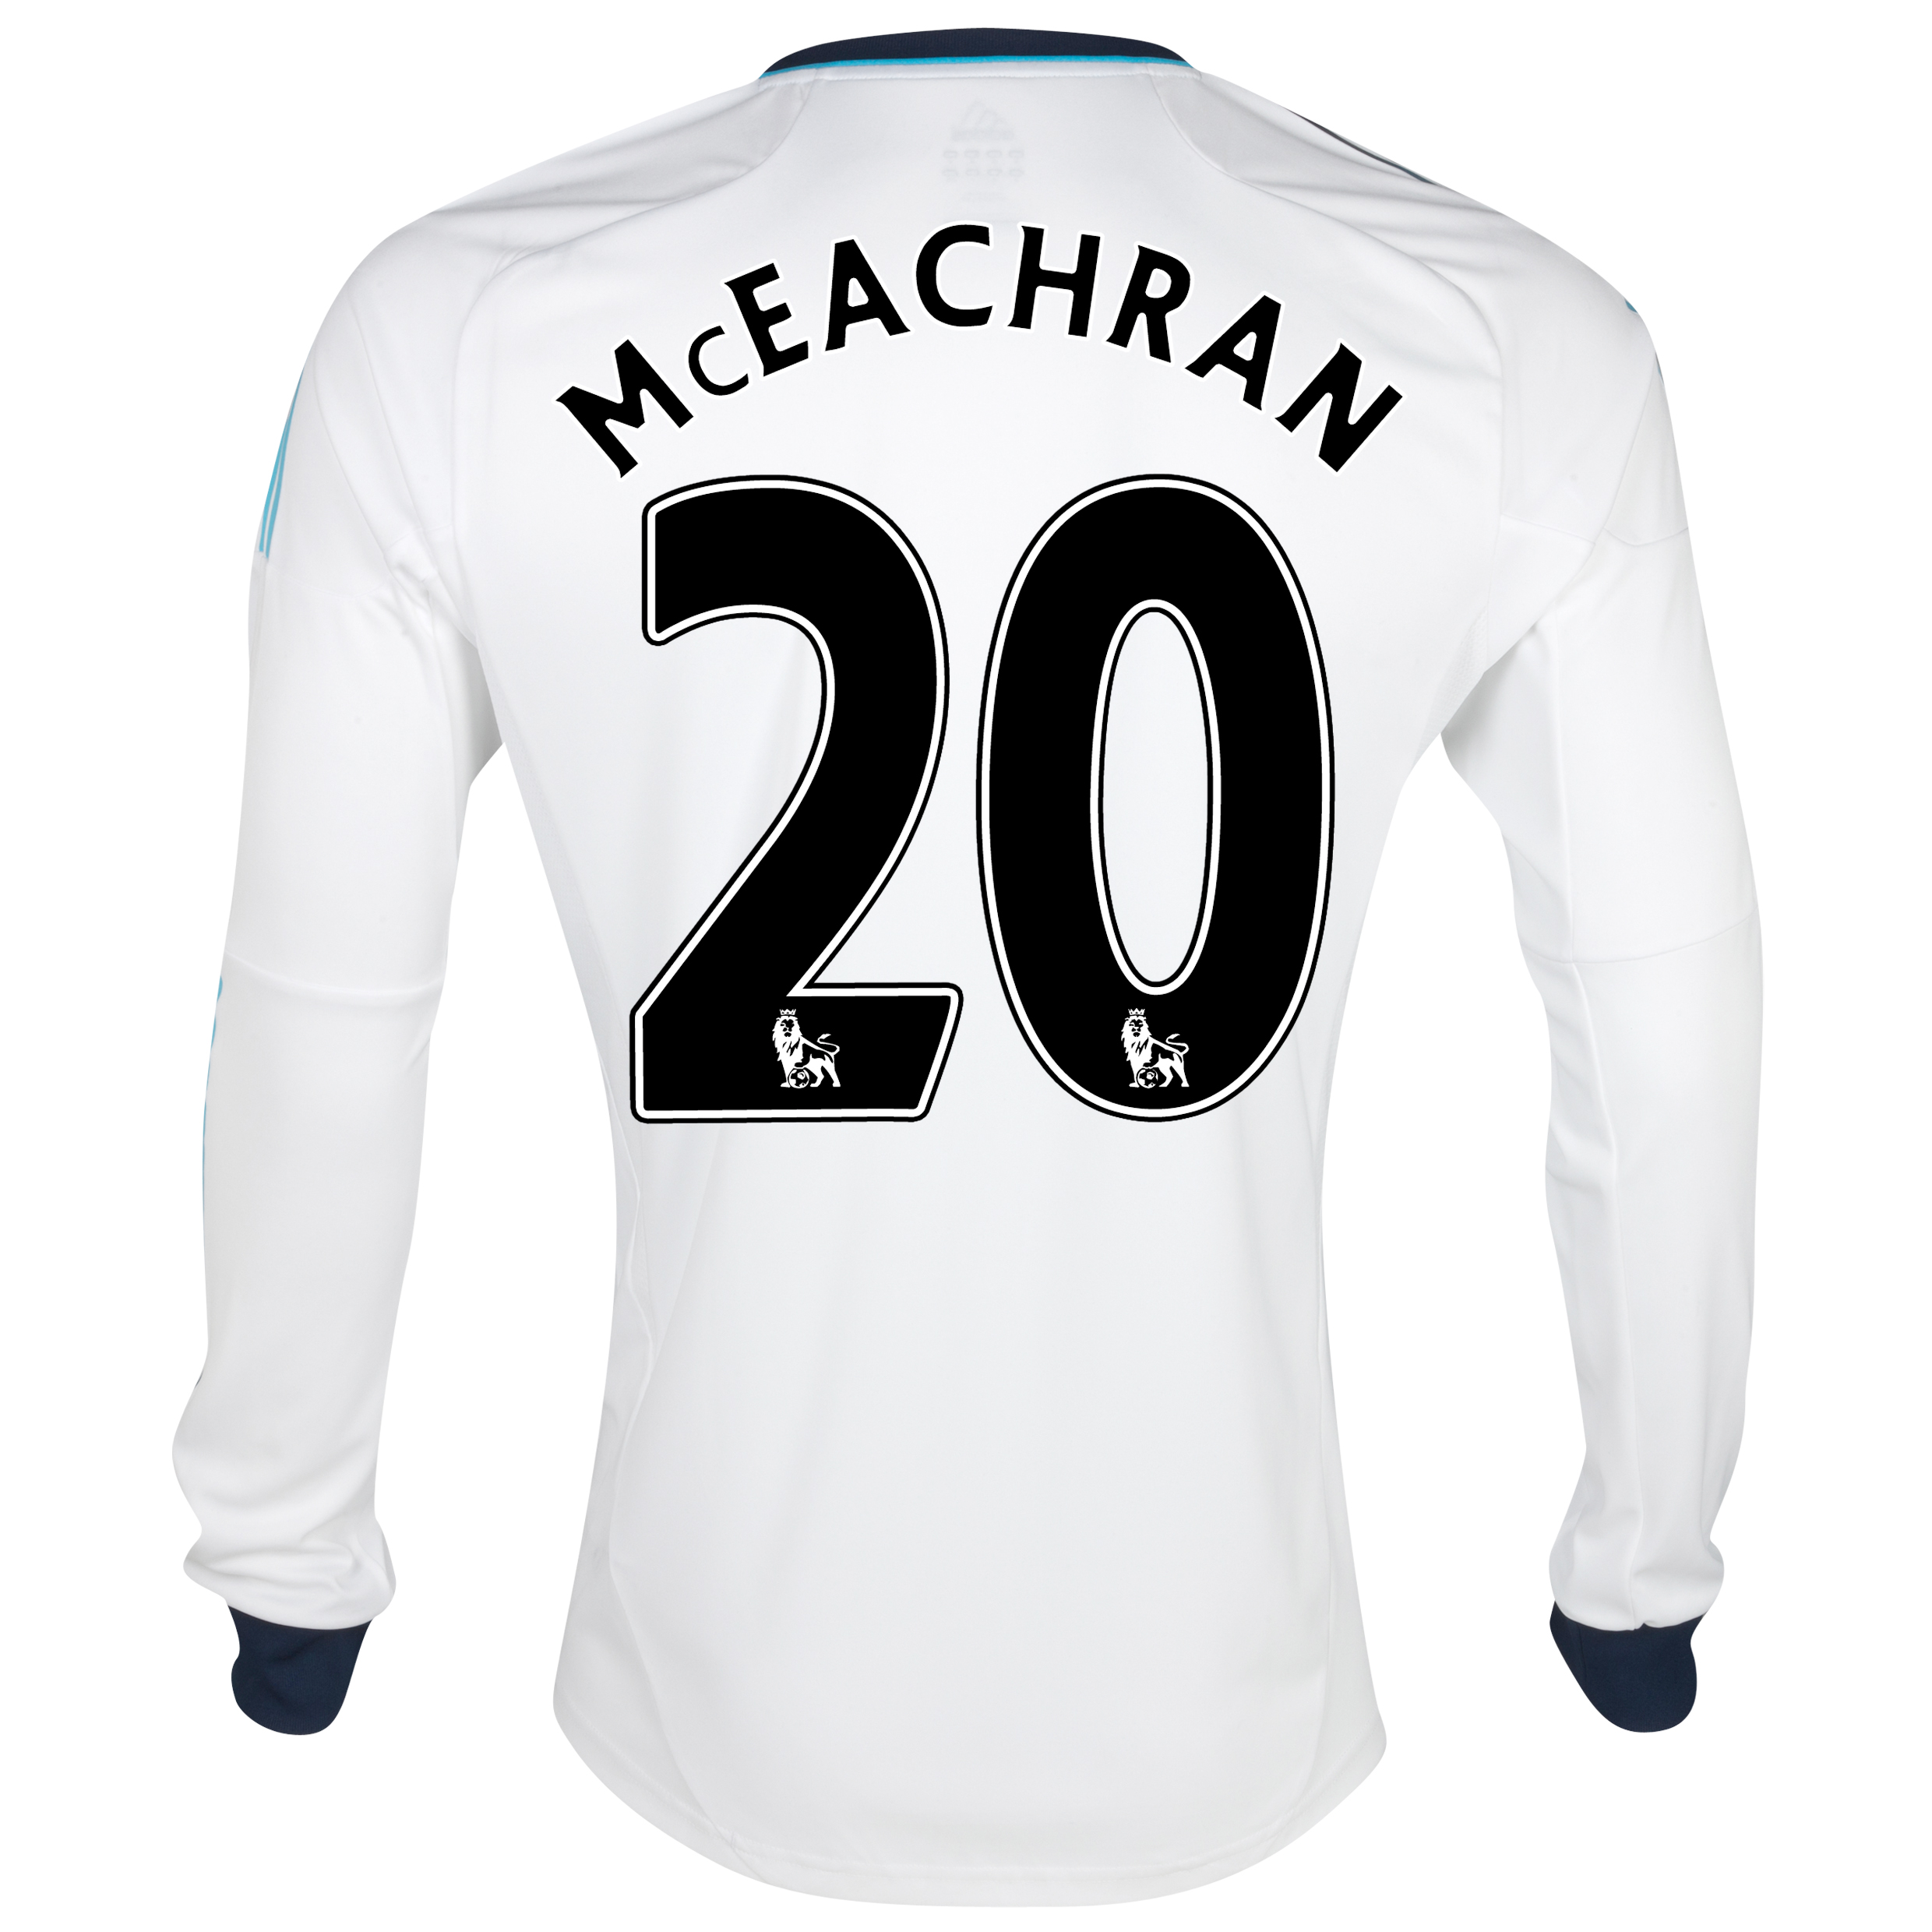 Chelsea Away Shirt 2012/13 - Long Sleeved - Kids with McEachran 20 printing